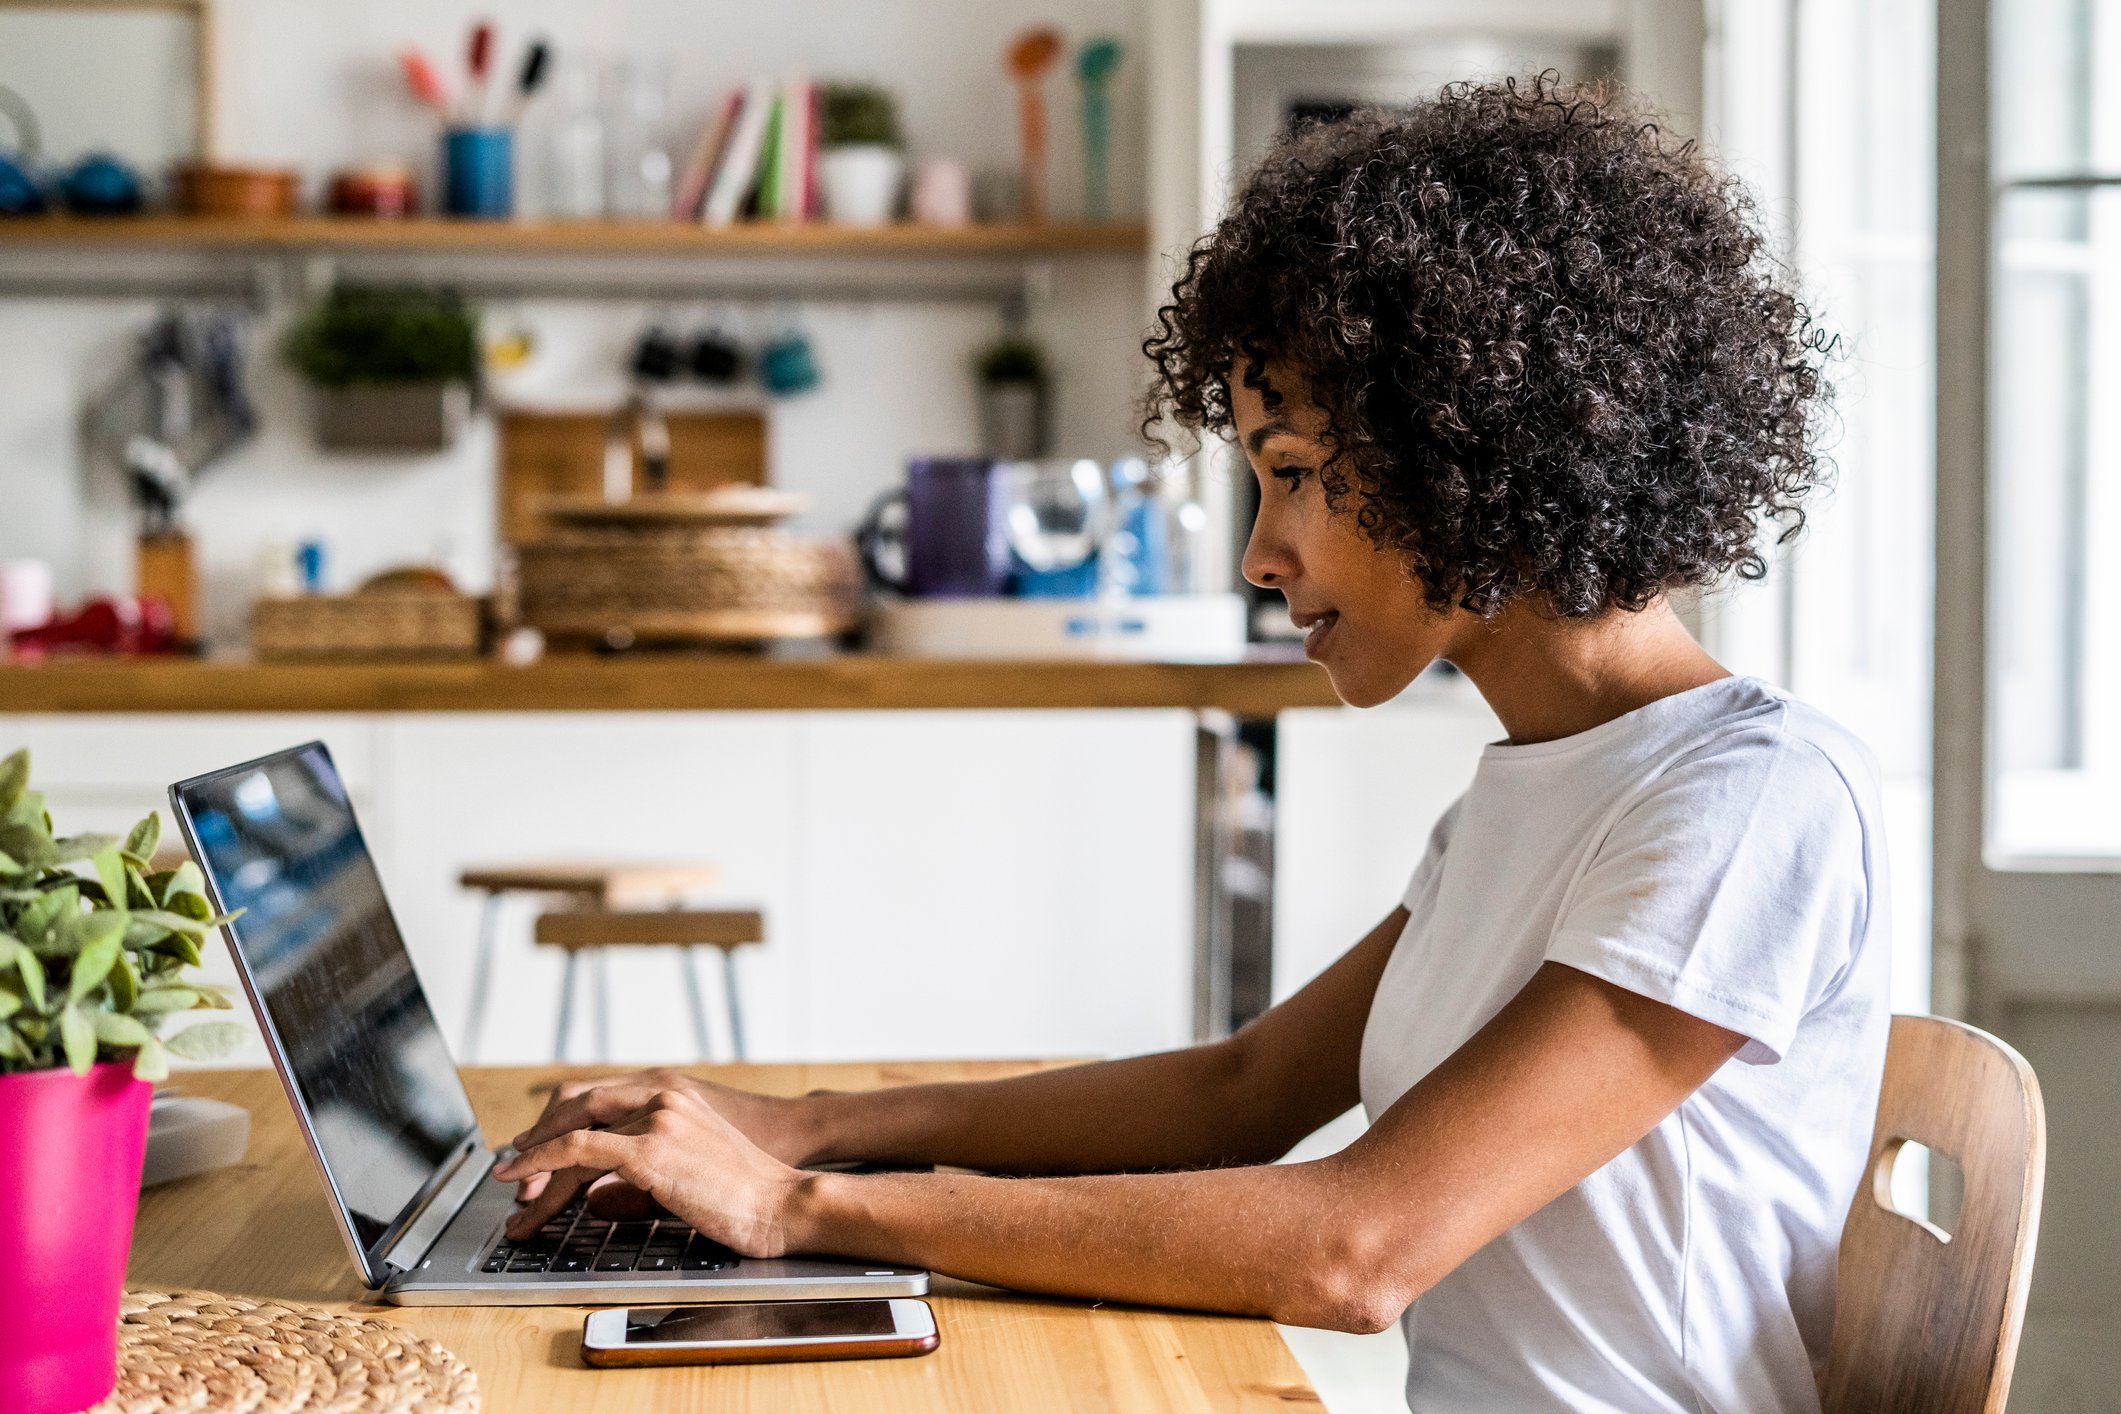 For many Black employees, working from home is a refuge from racism